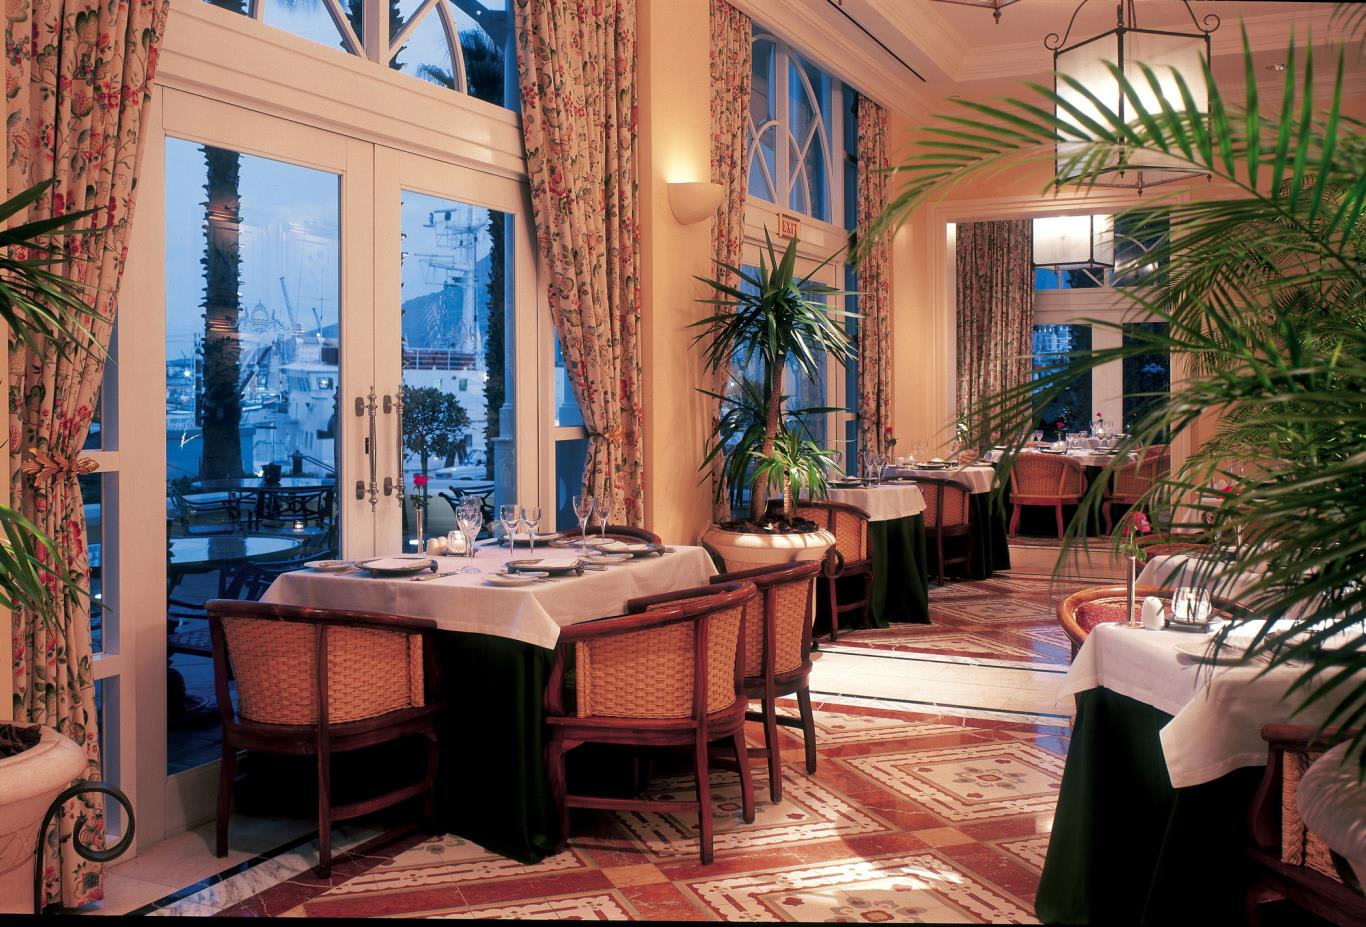 The Conservatory Restaurant